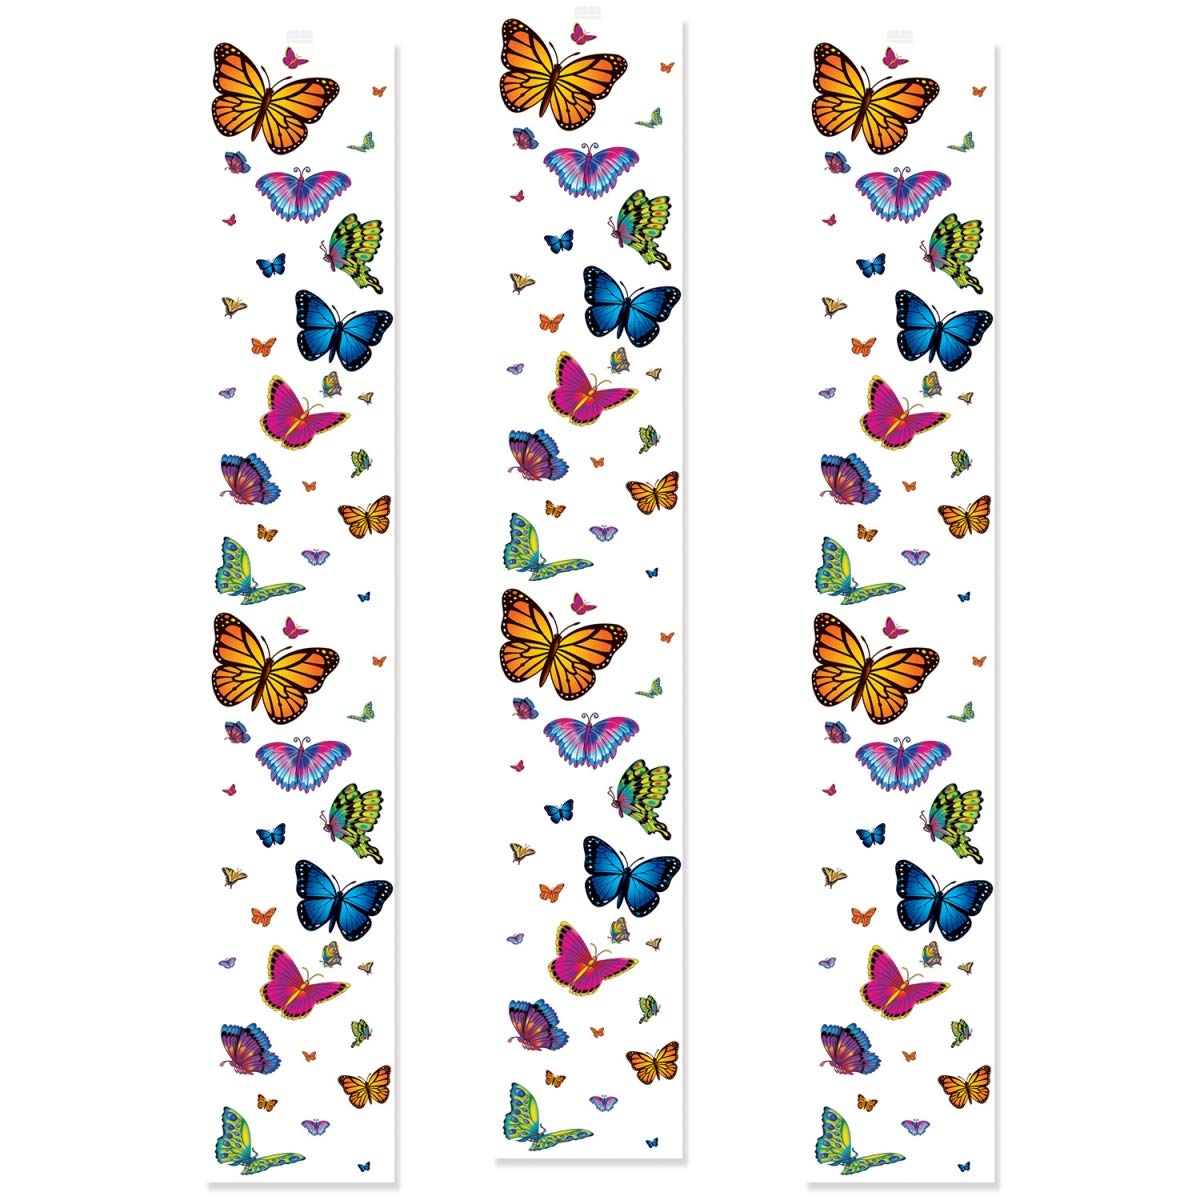 Beistle 54817 12 in. x 6 ft. Butterfly Party Panels - Pack of 12